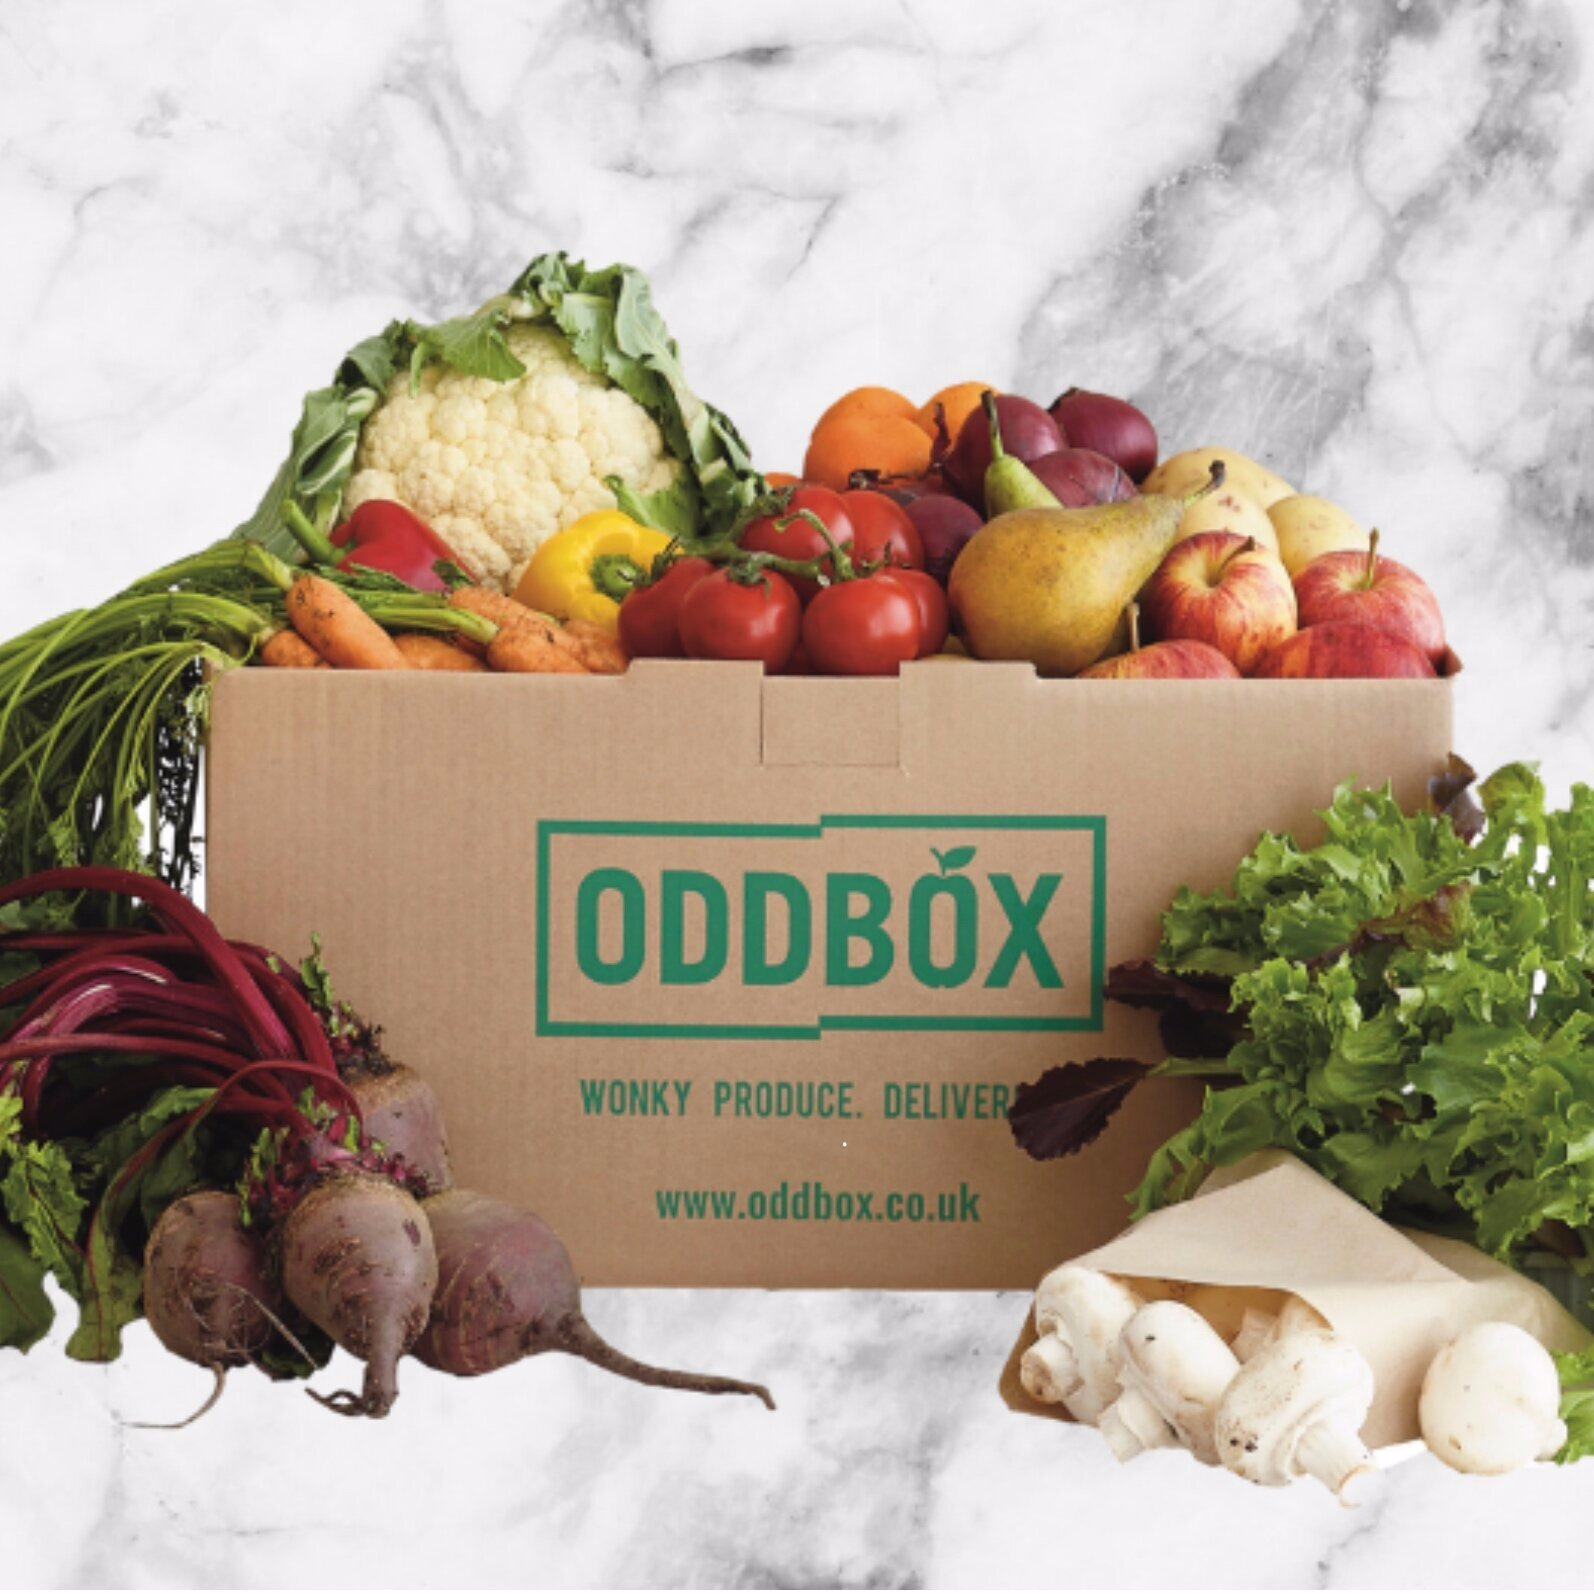 Oddbox - Oddbox tackles food waste by providing a wonky veg box subscription service, whereby it buys imperfect fruits and vegetables directly from local farms and markets for a fair price and delivers them to homes and offices. Most fruit ad veg that is not perfectly symmetrical is thrown away because supermarkets and other veg box delivery companies don't want them.